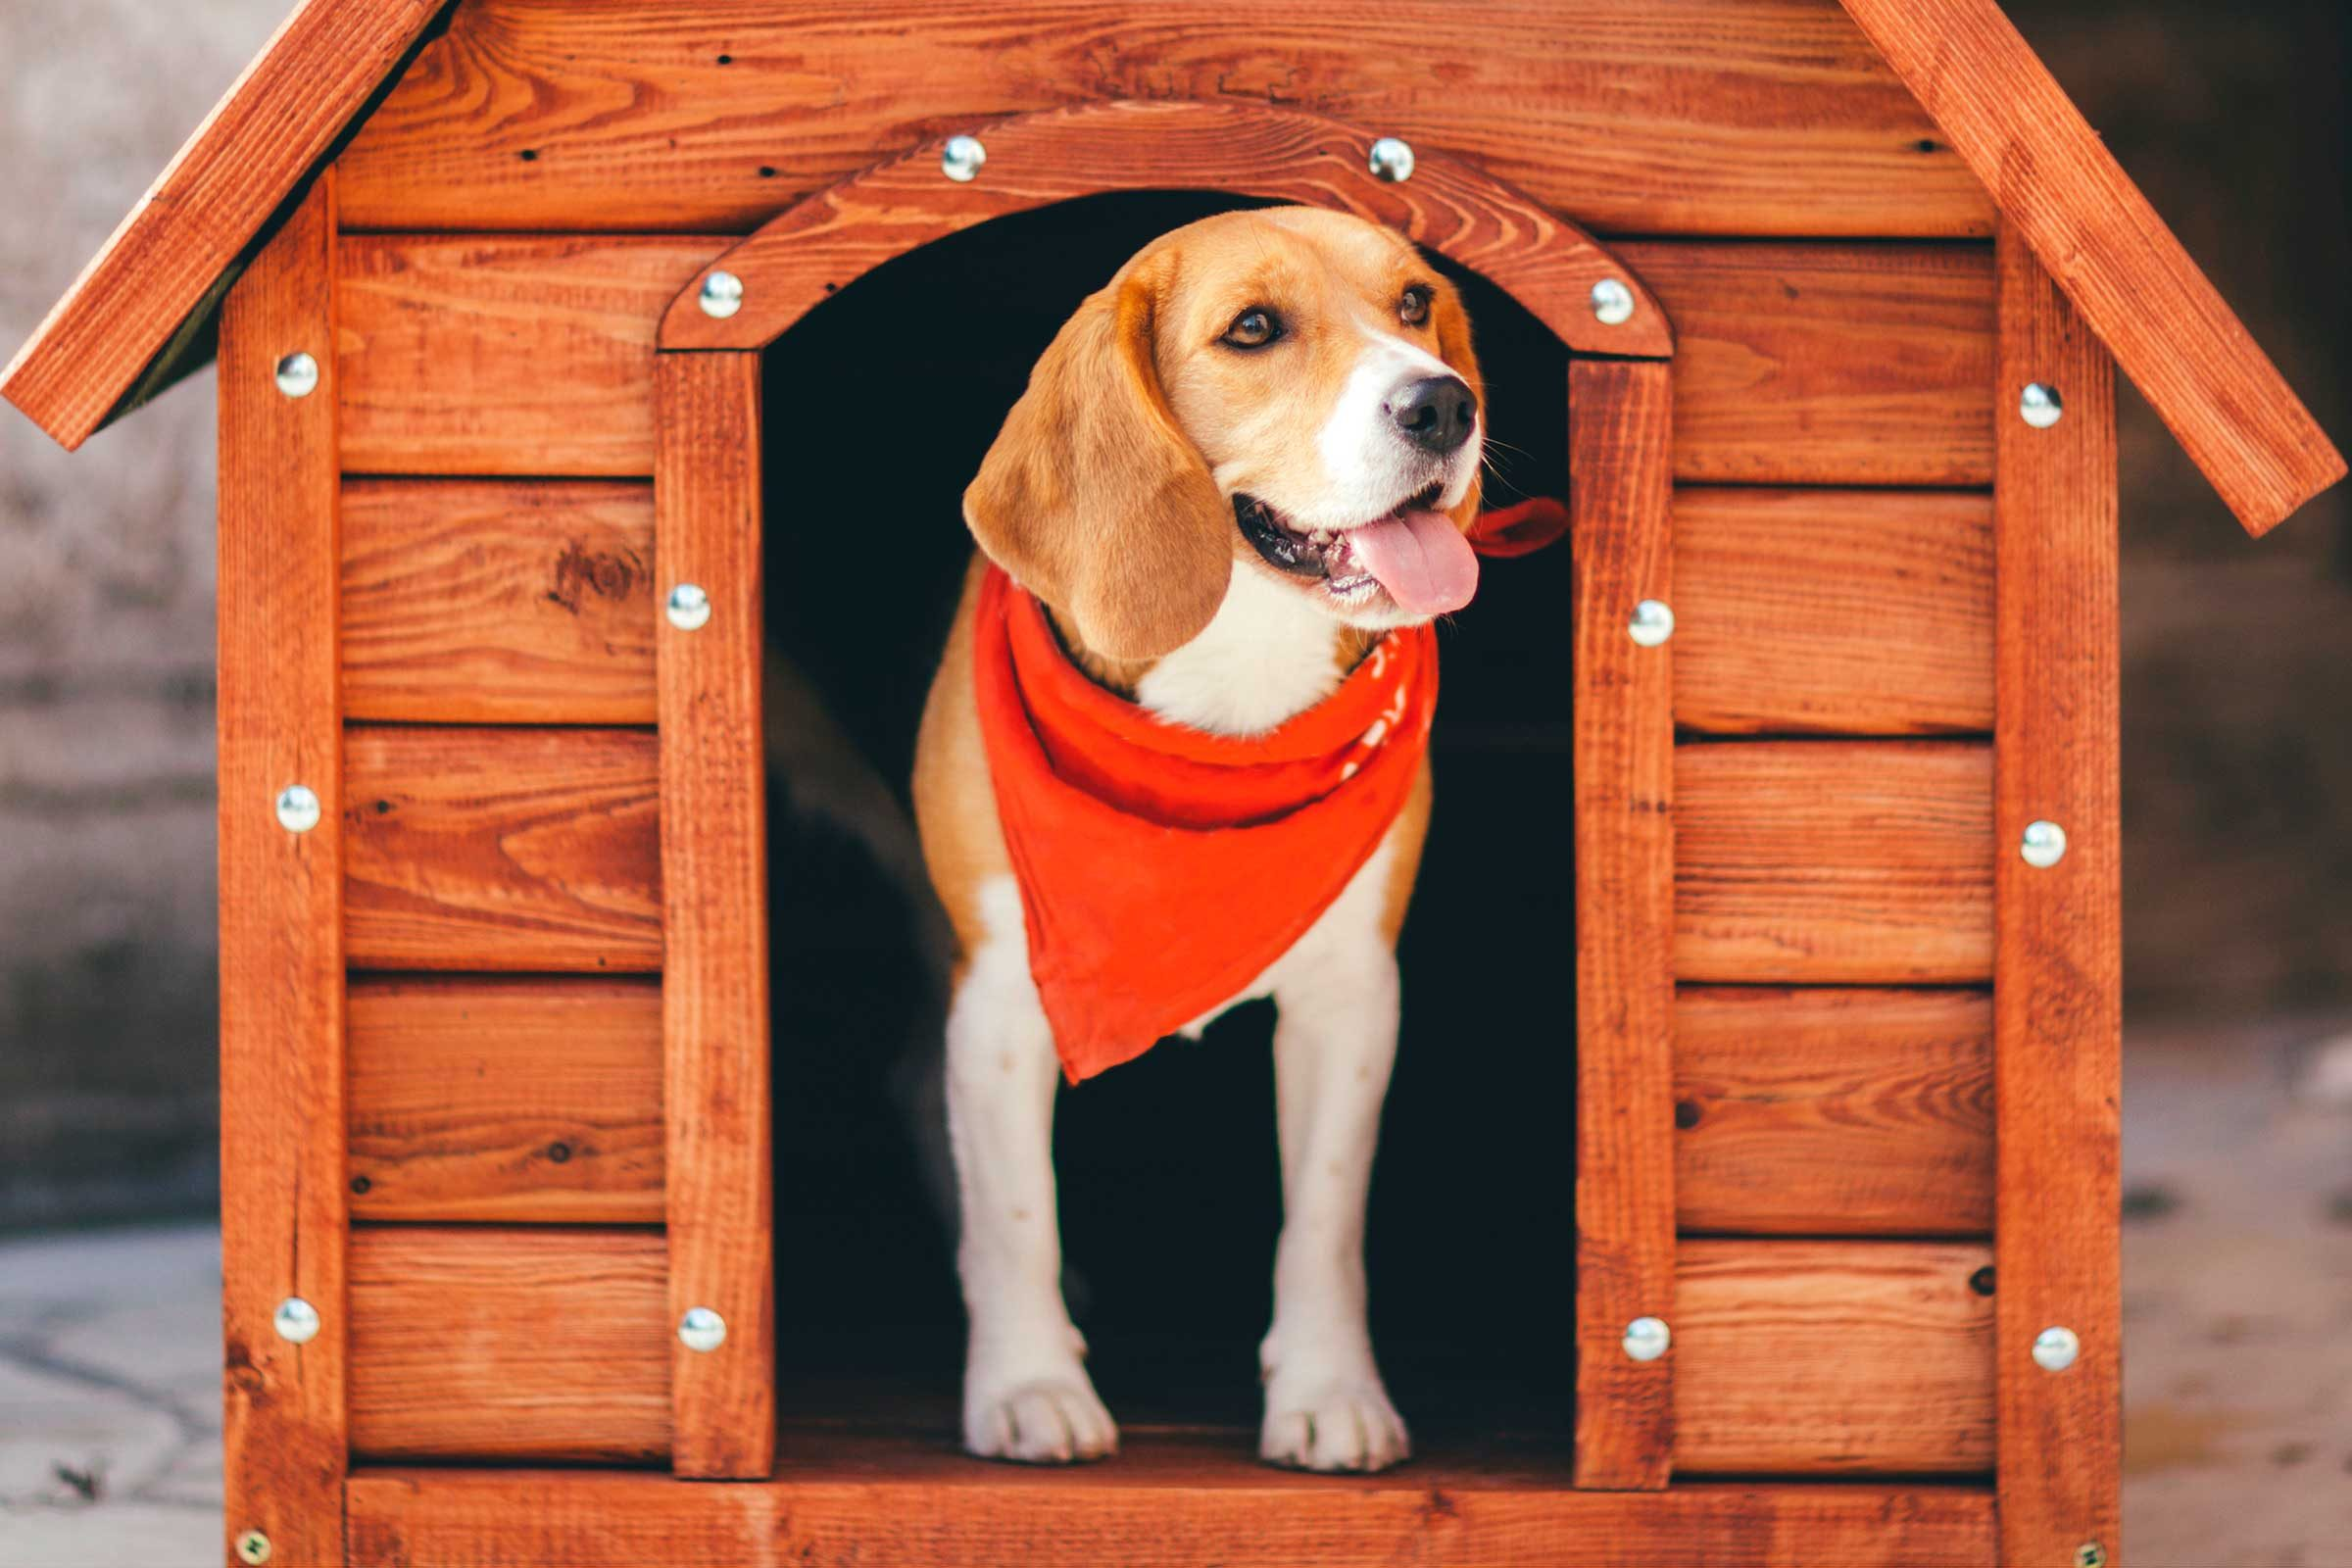 Pictures of a kennel CONVERT WMV WMA MKV ASF JPG BMP PNG TIF